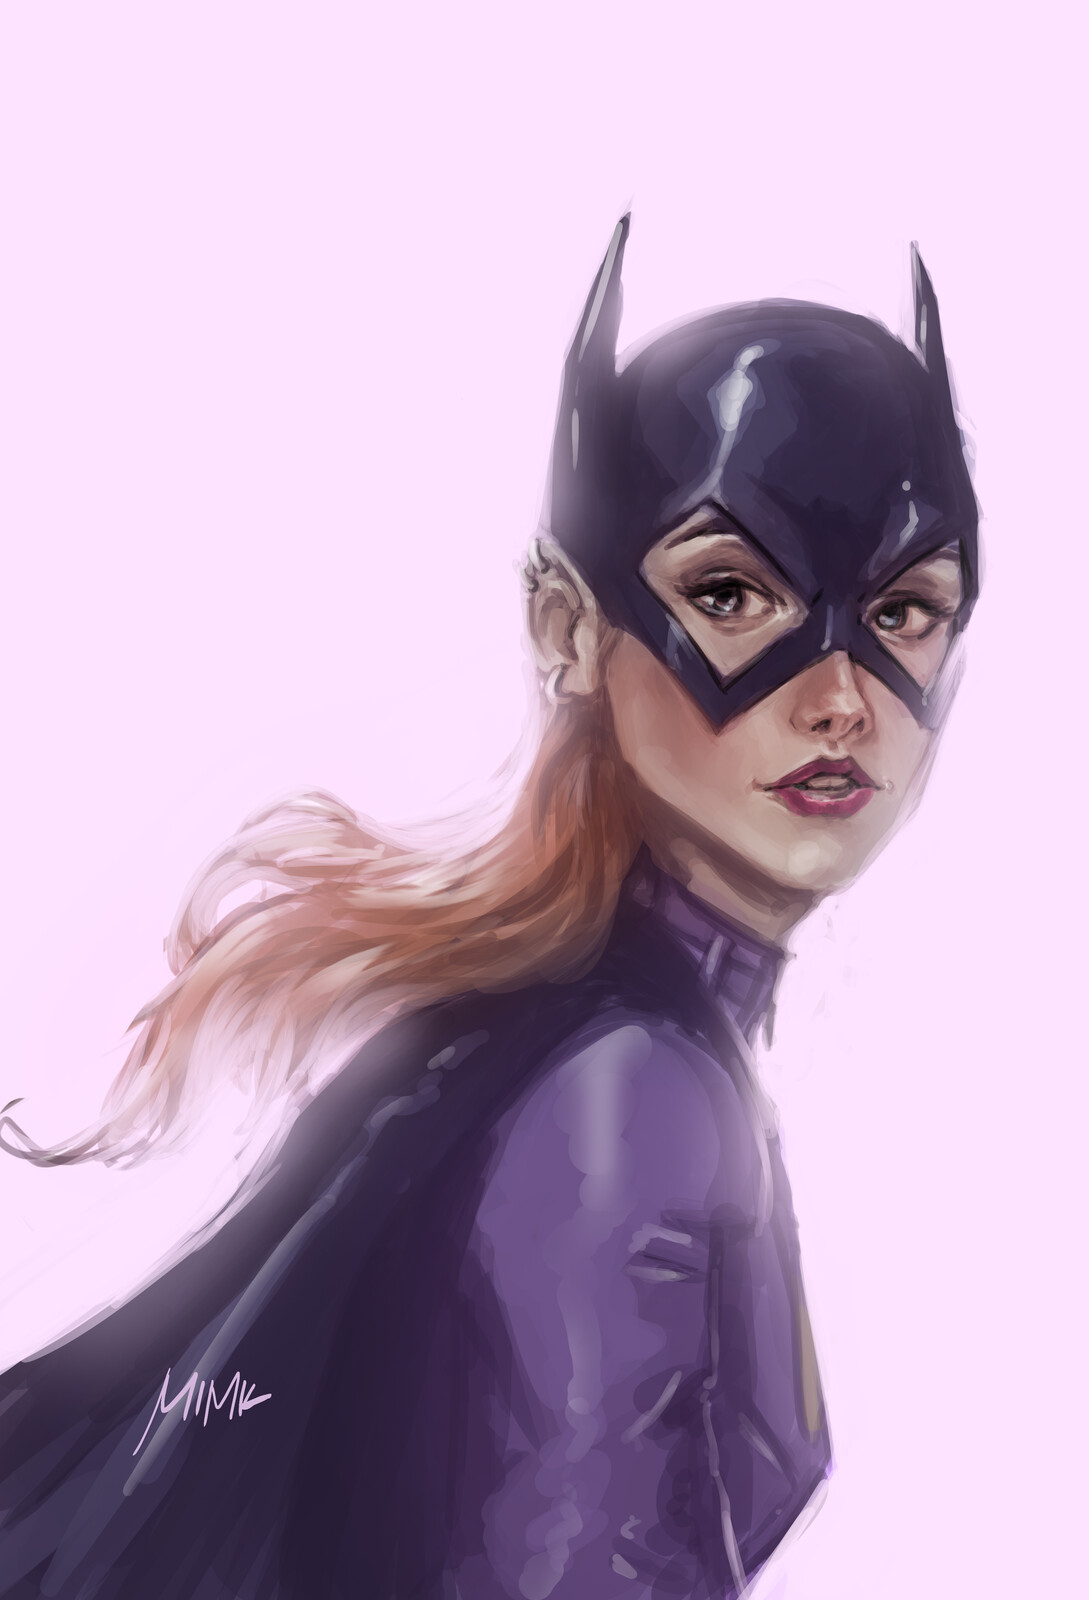 babs!